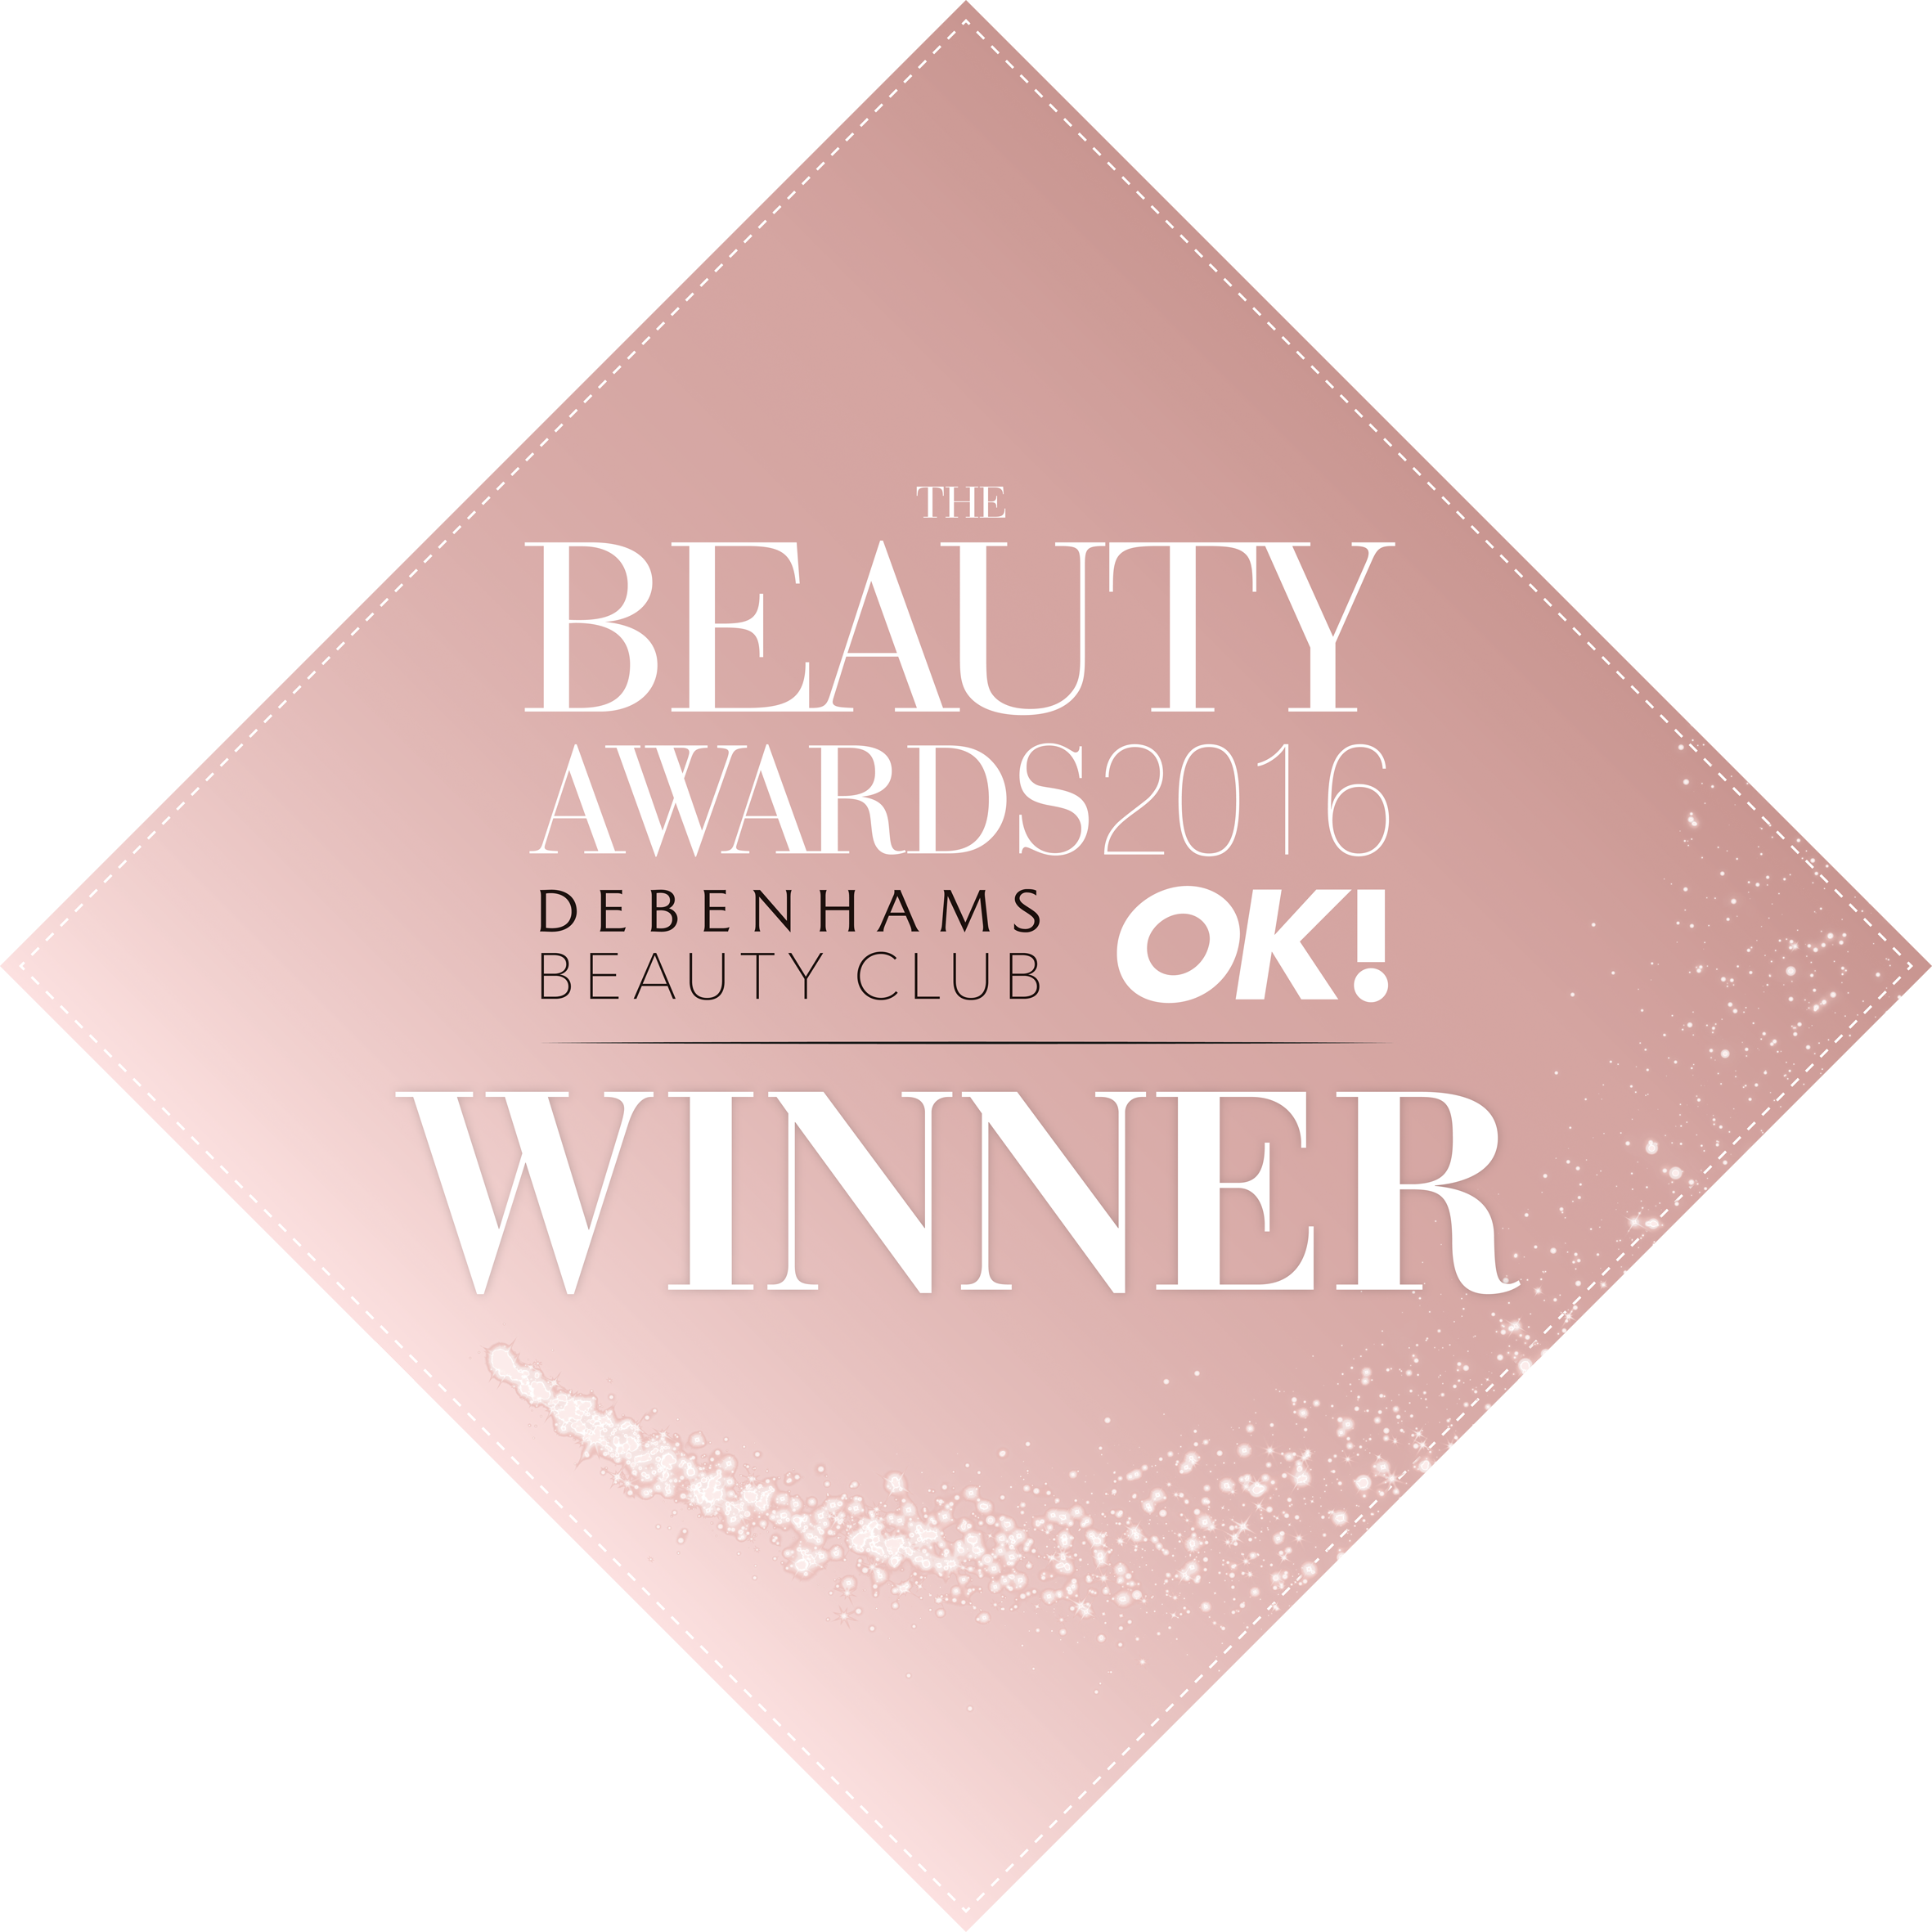 OK Beauty Awards 2016 Winner